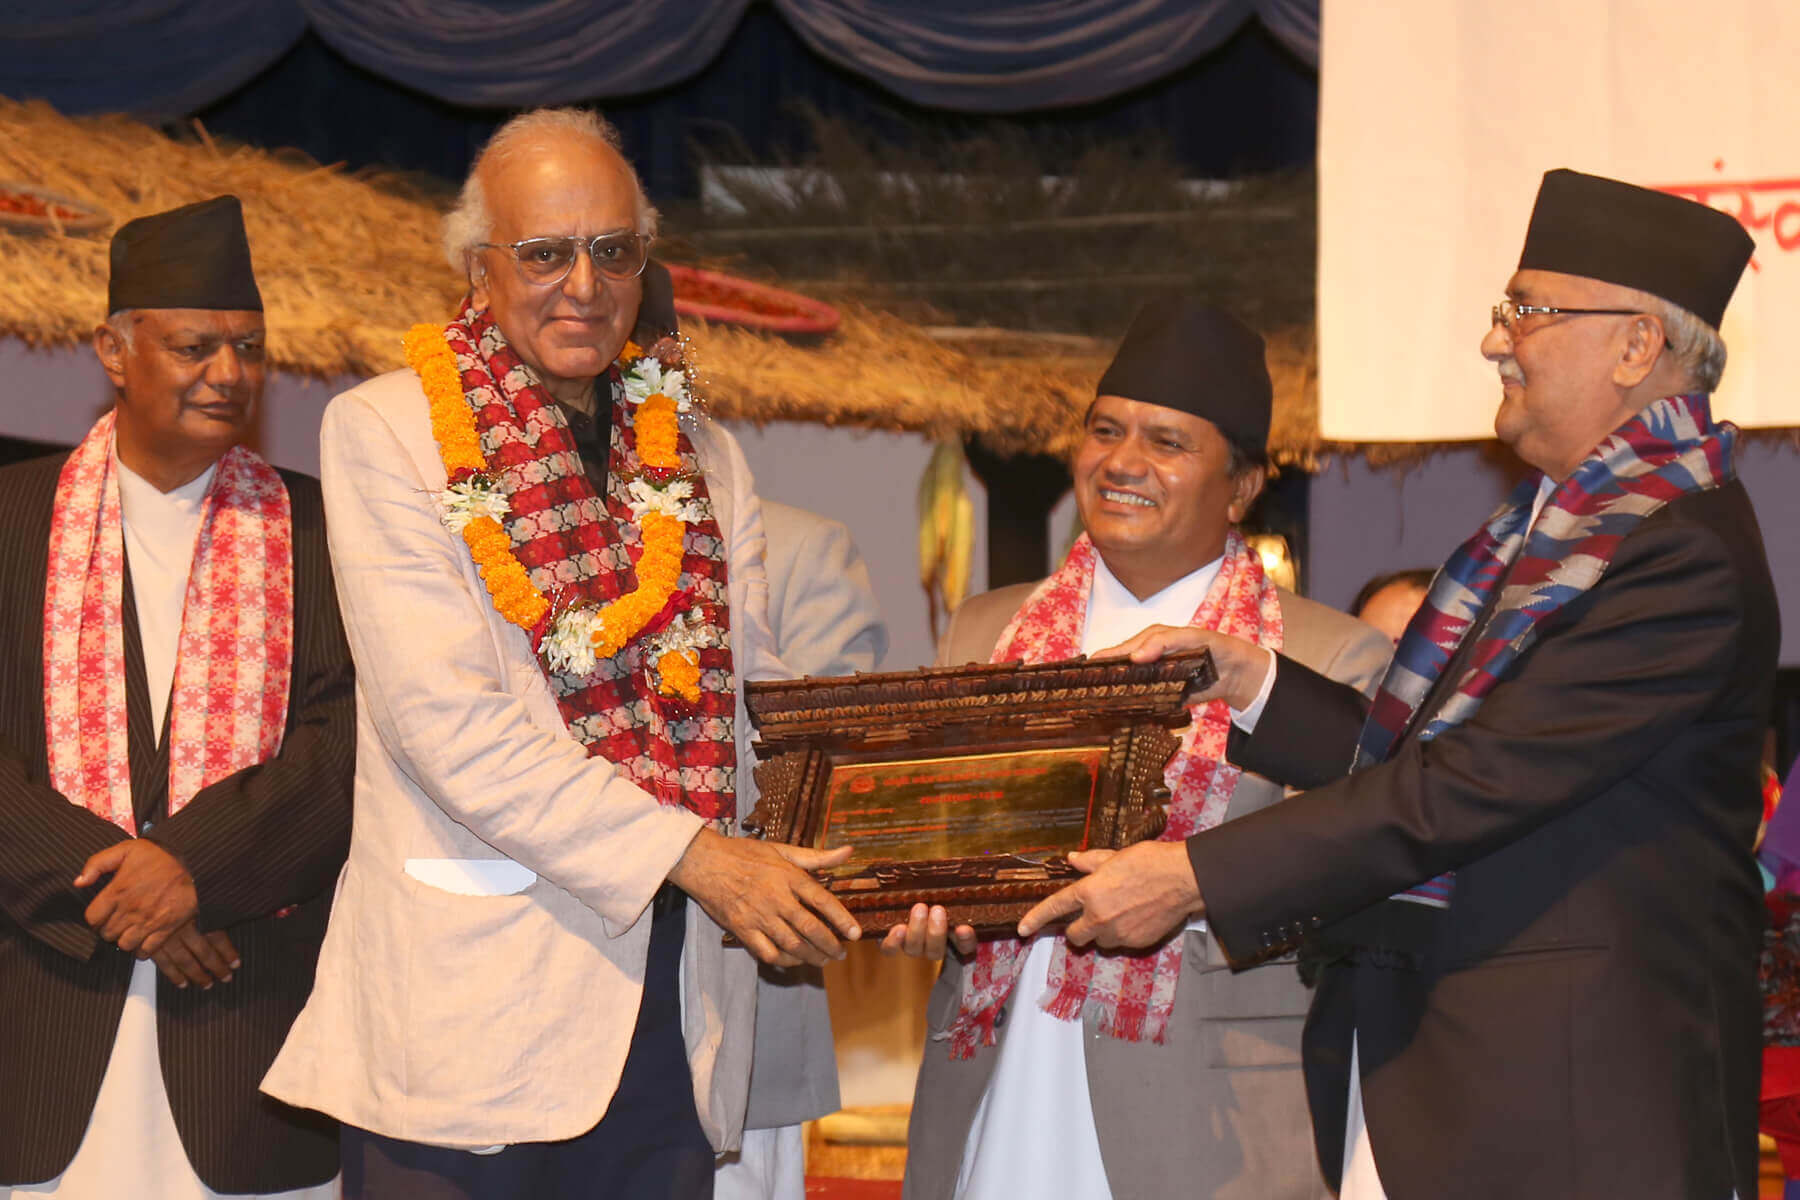 Abhi Subedi awarded